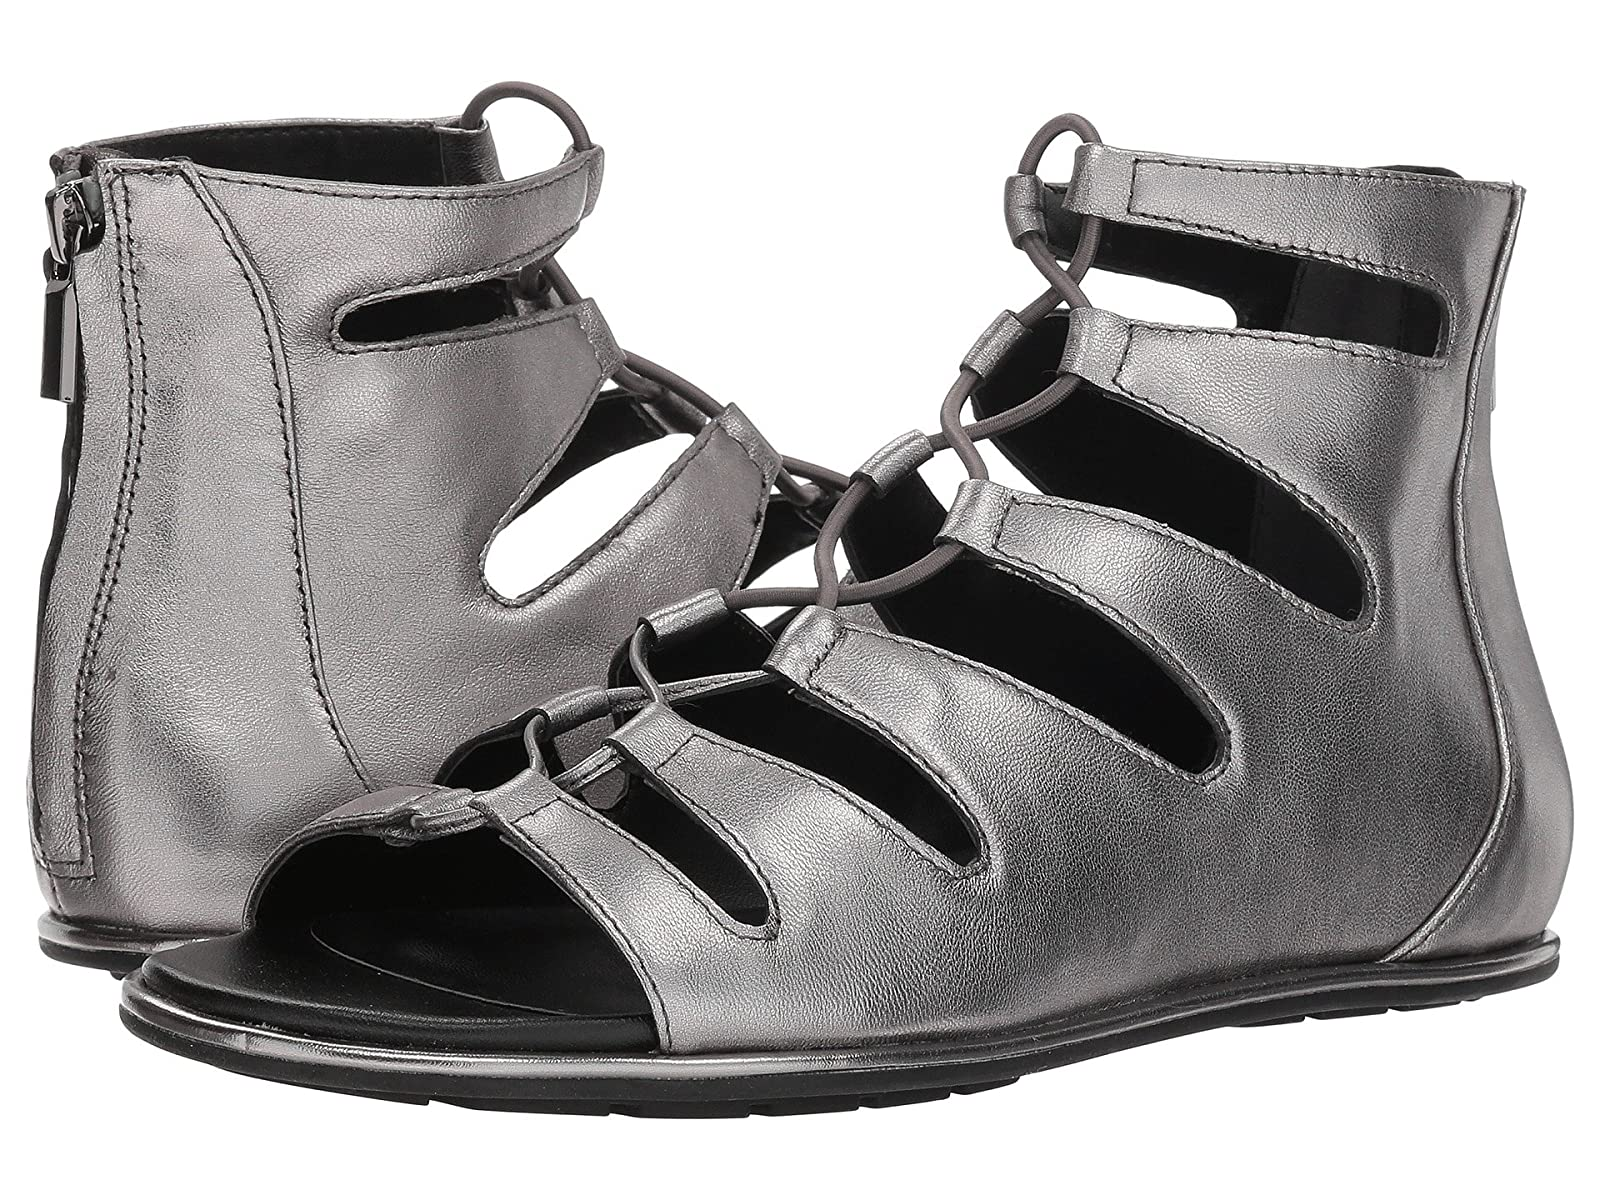 Kenneth Cole New York OllieCheap and distinctive eye-catching shoes